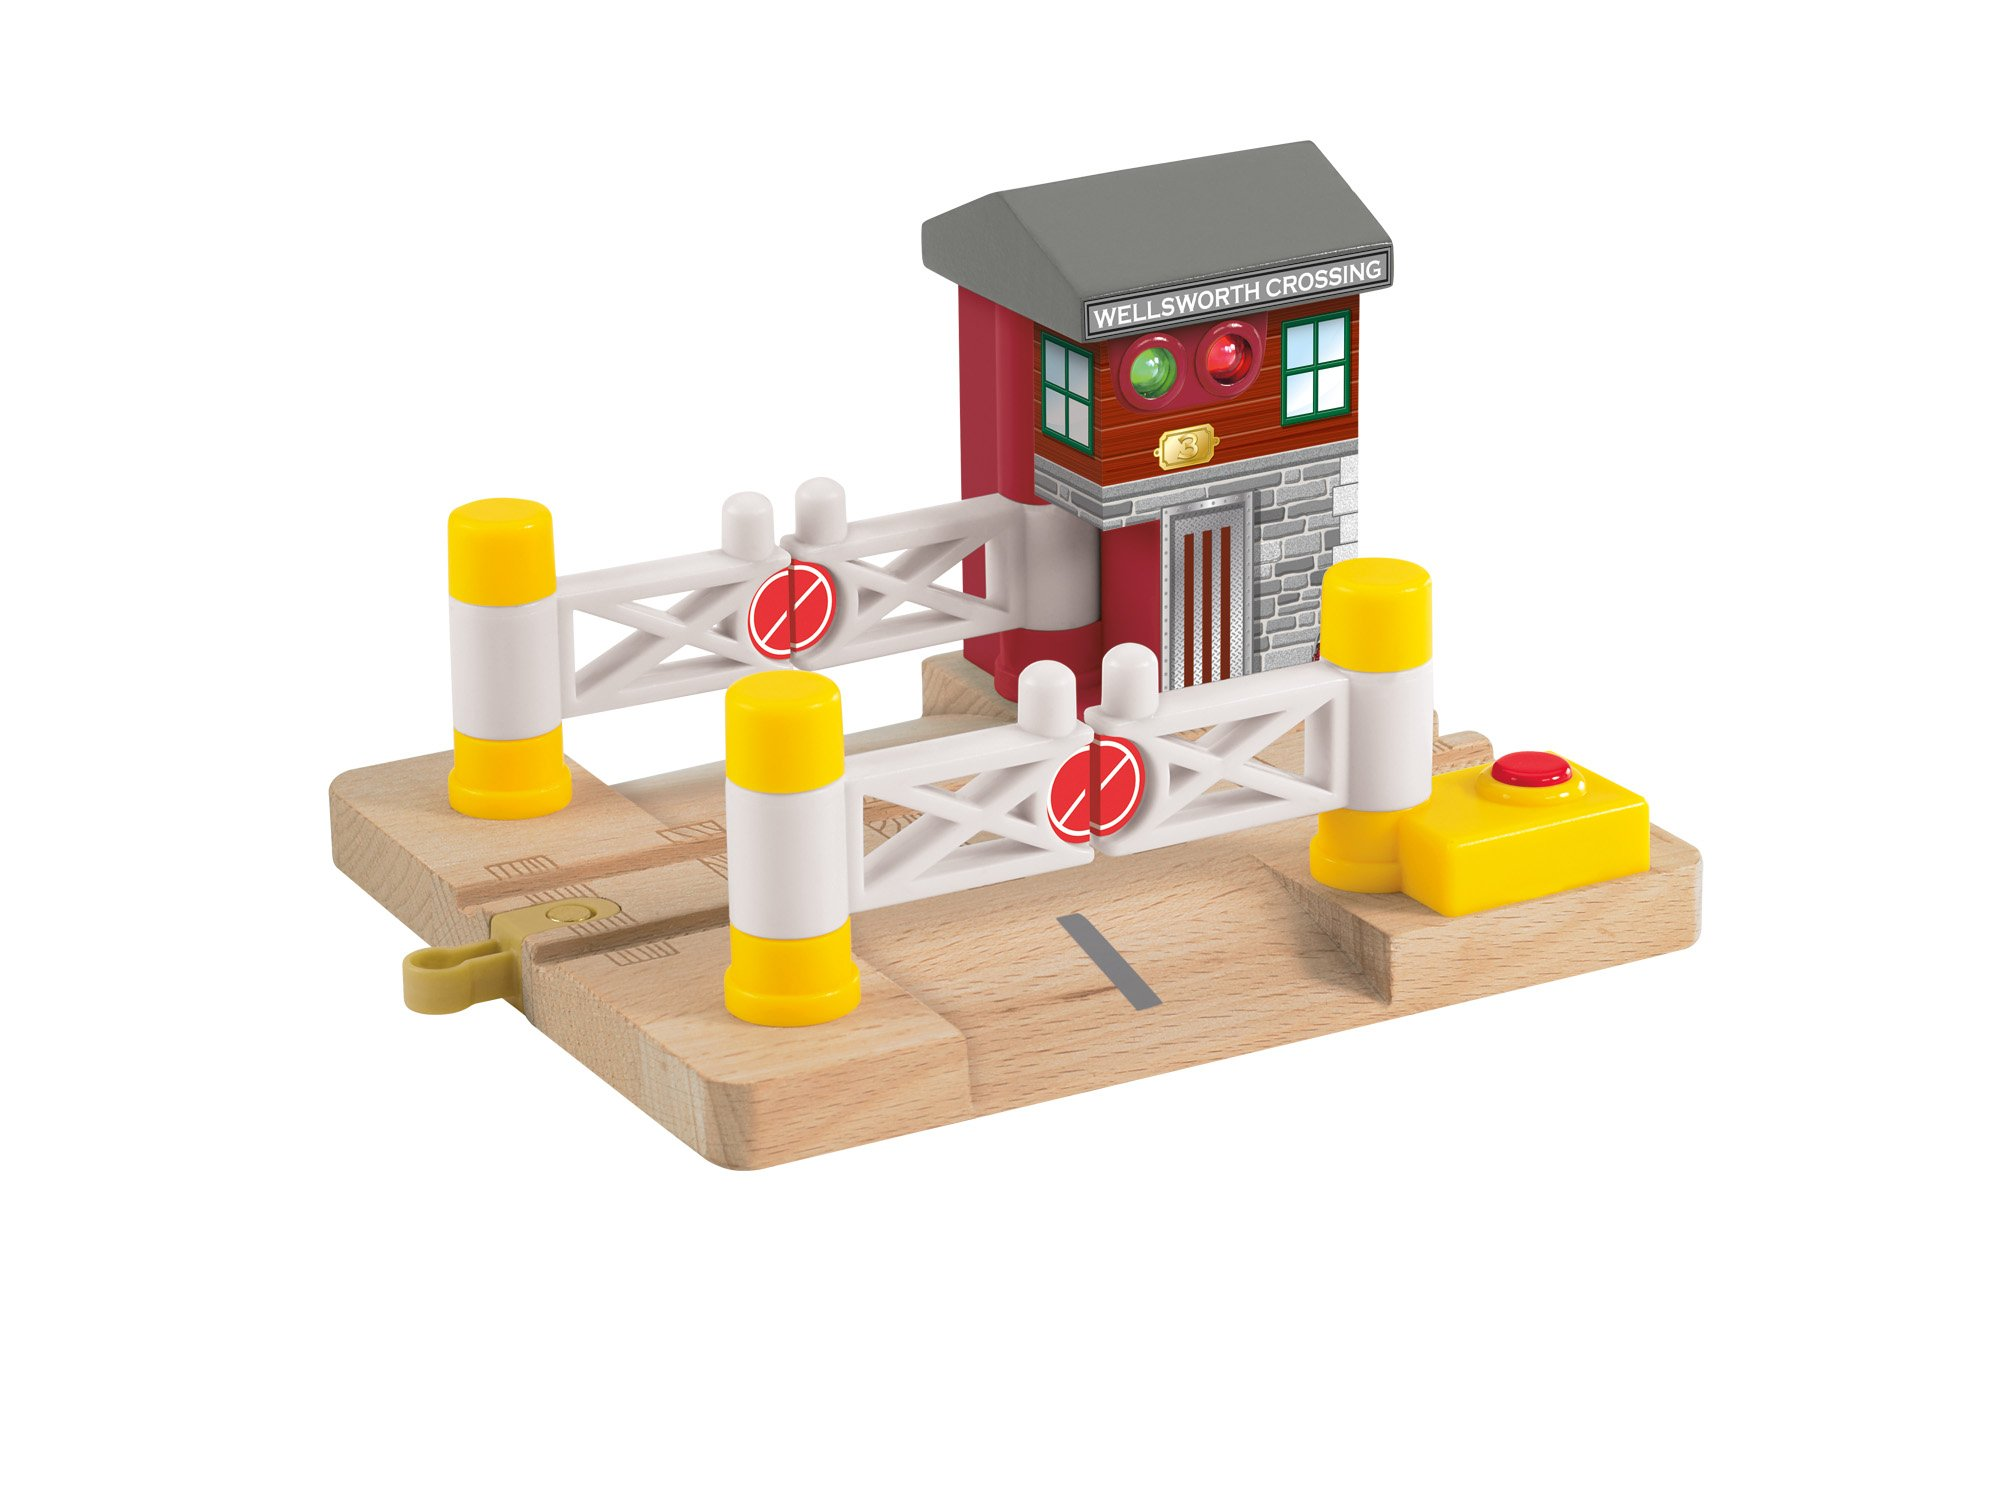 Thomas & Friends Fisher-Price Wooden Railway, Deluxe Railroad Crossing Signal - Battery Operated